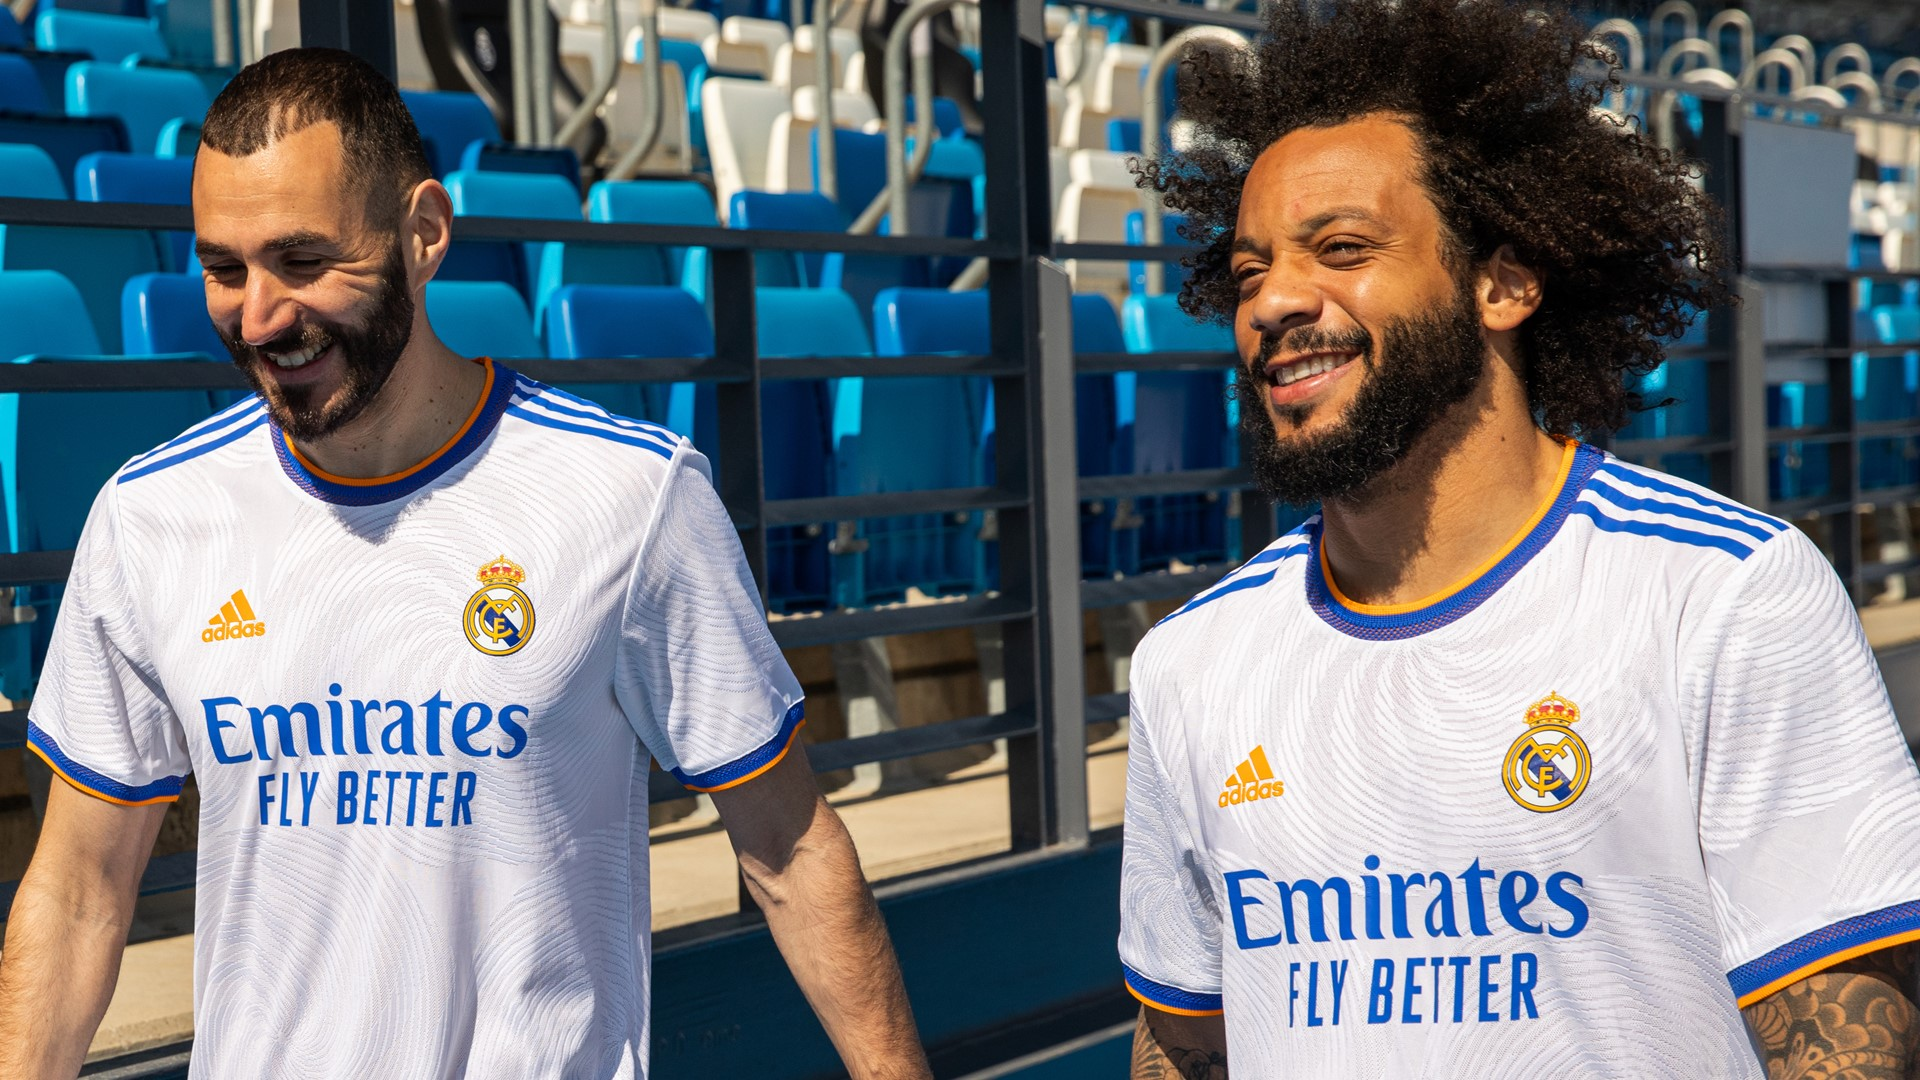 REAL MADRID 2021/22 SEASON HOME JERSEY: A SYMBOL OF THE REAL ...